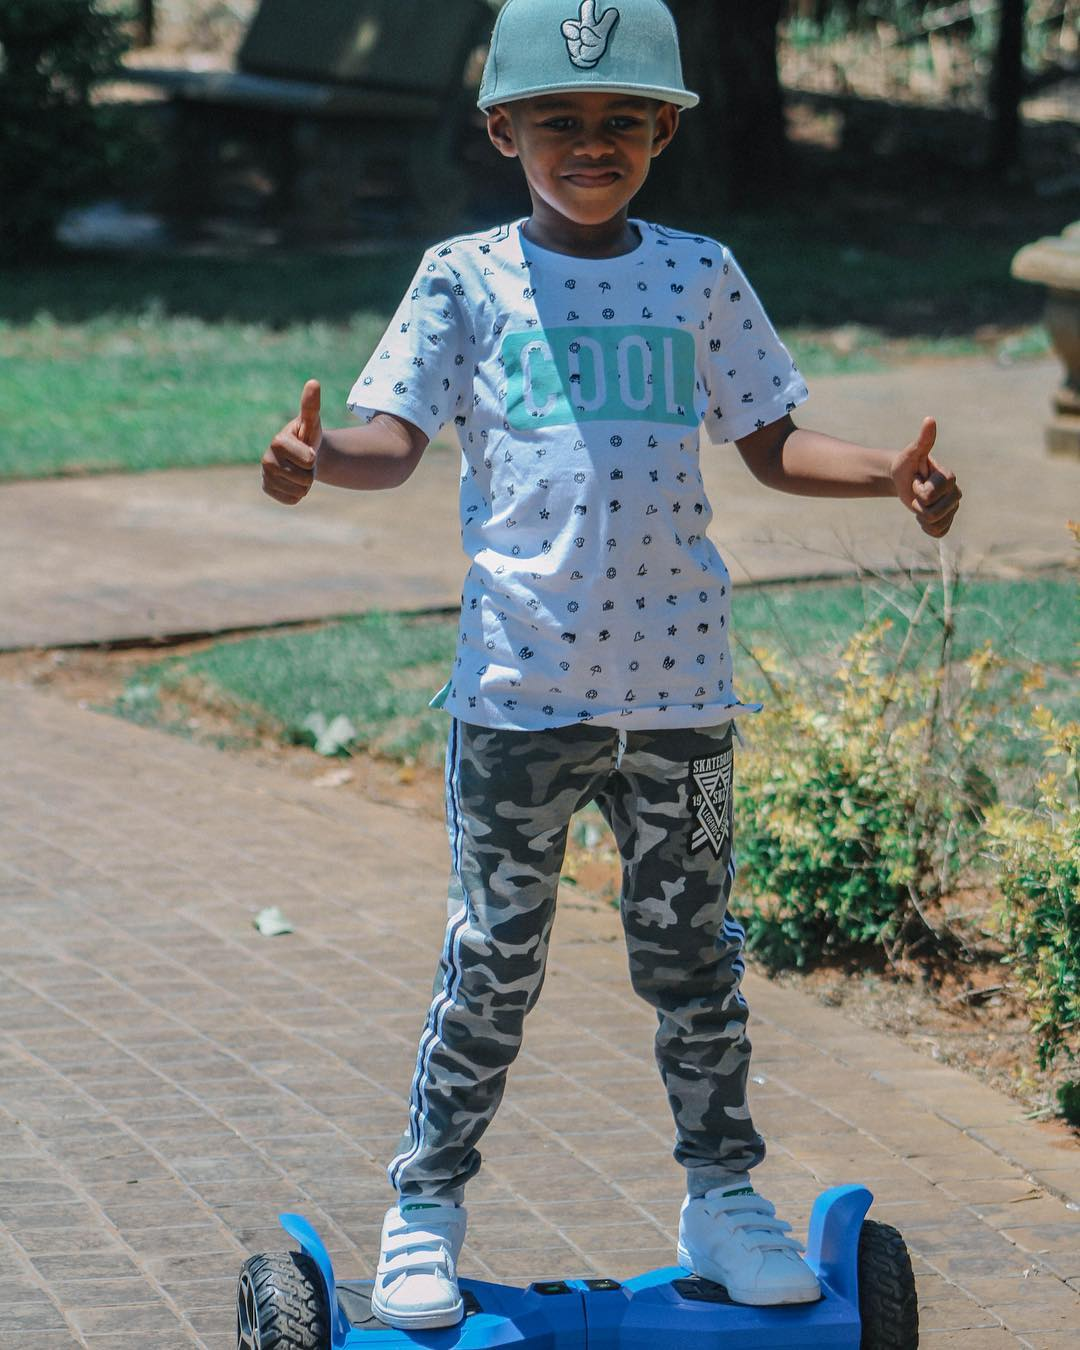 DJ Arch Jnr on hoverboard